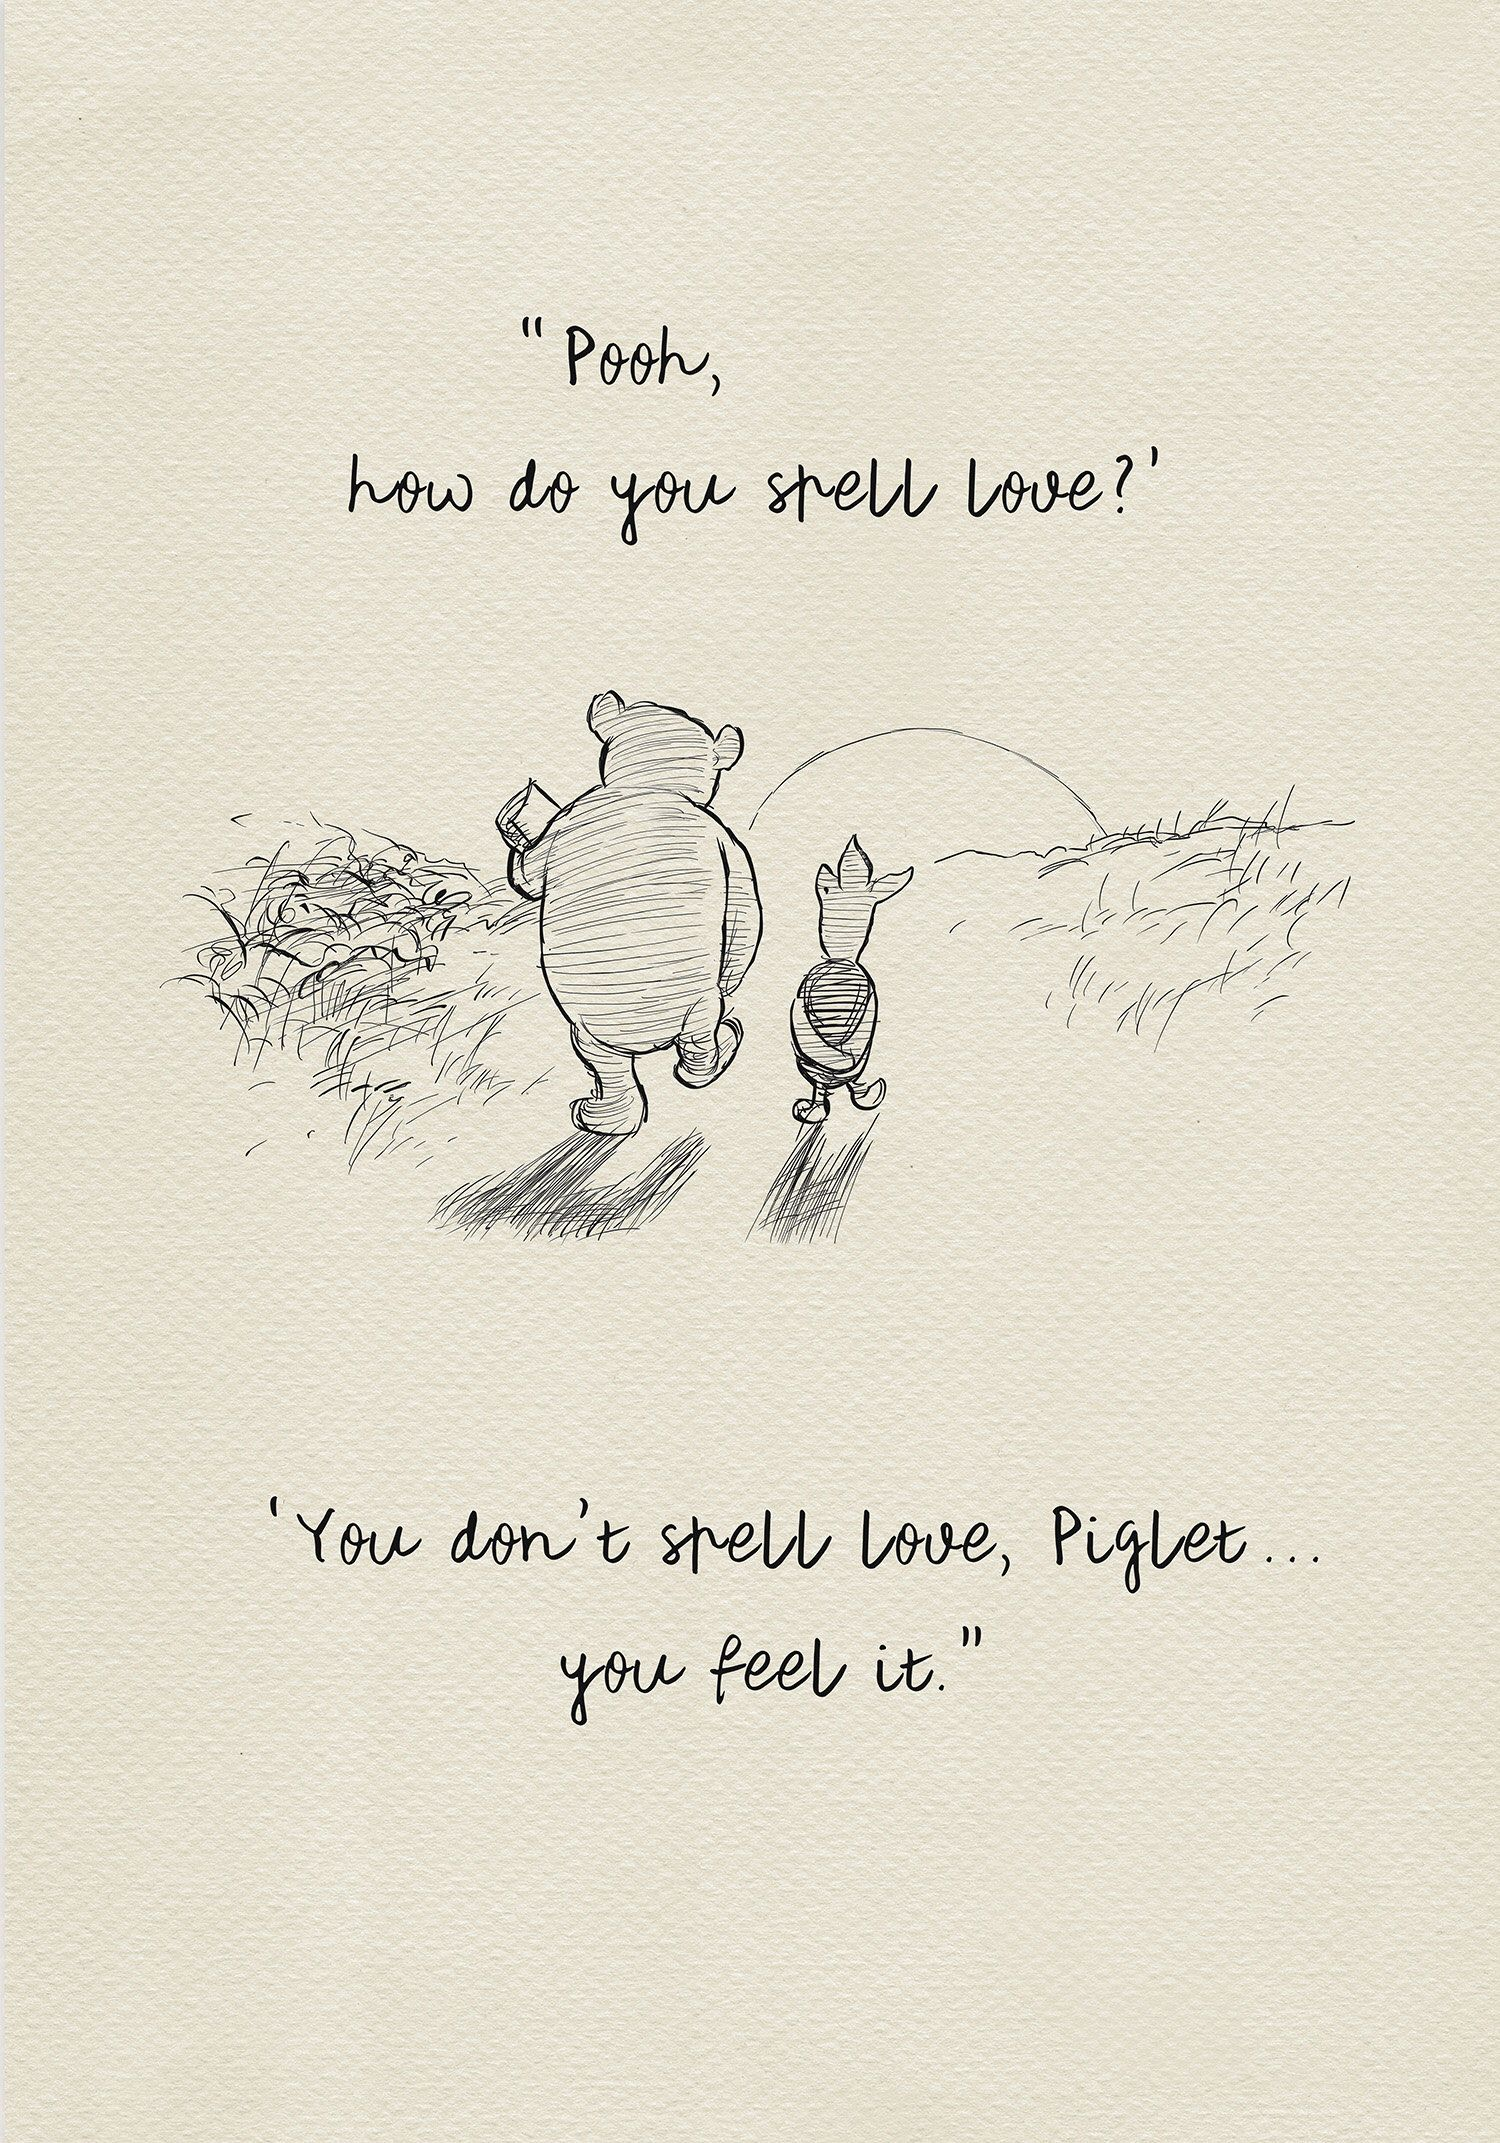 Pooh, how do you spell love? – Winnie the Pooh Quotes – classic vintage style poster print Pooh, how do you spell love? – Winnie the Pooh Quotes – classic vintage style poster.